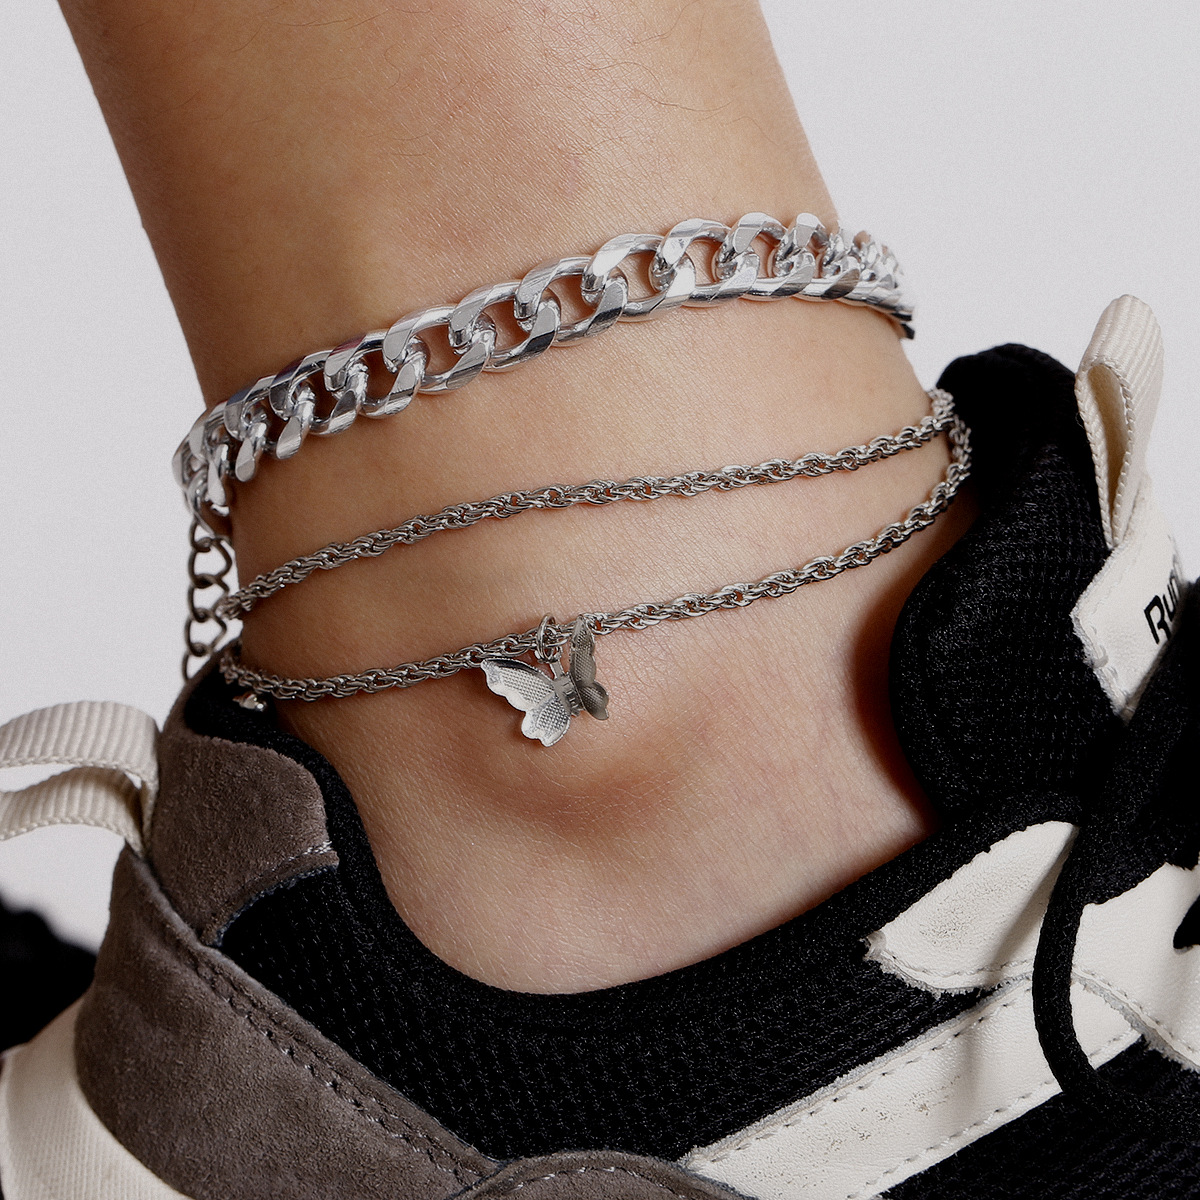 2020 New Simple Chian Butterfly Pendant Anklets For Women Gold Silver Color Twisted Chian Ankle Bracelet on Leg Foot Jewelry